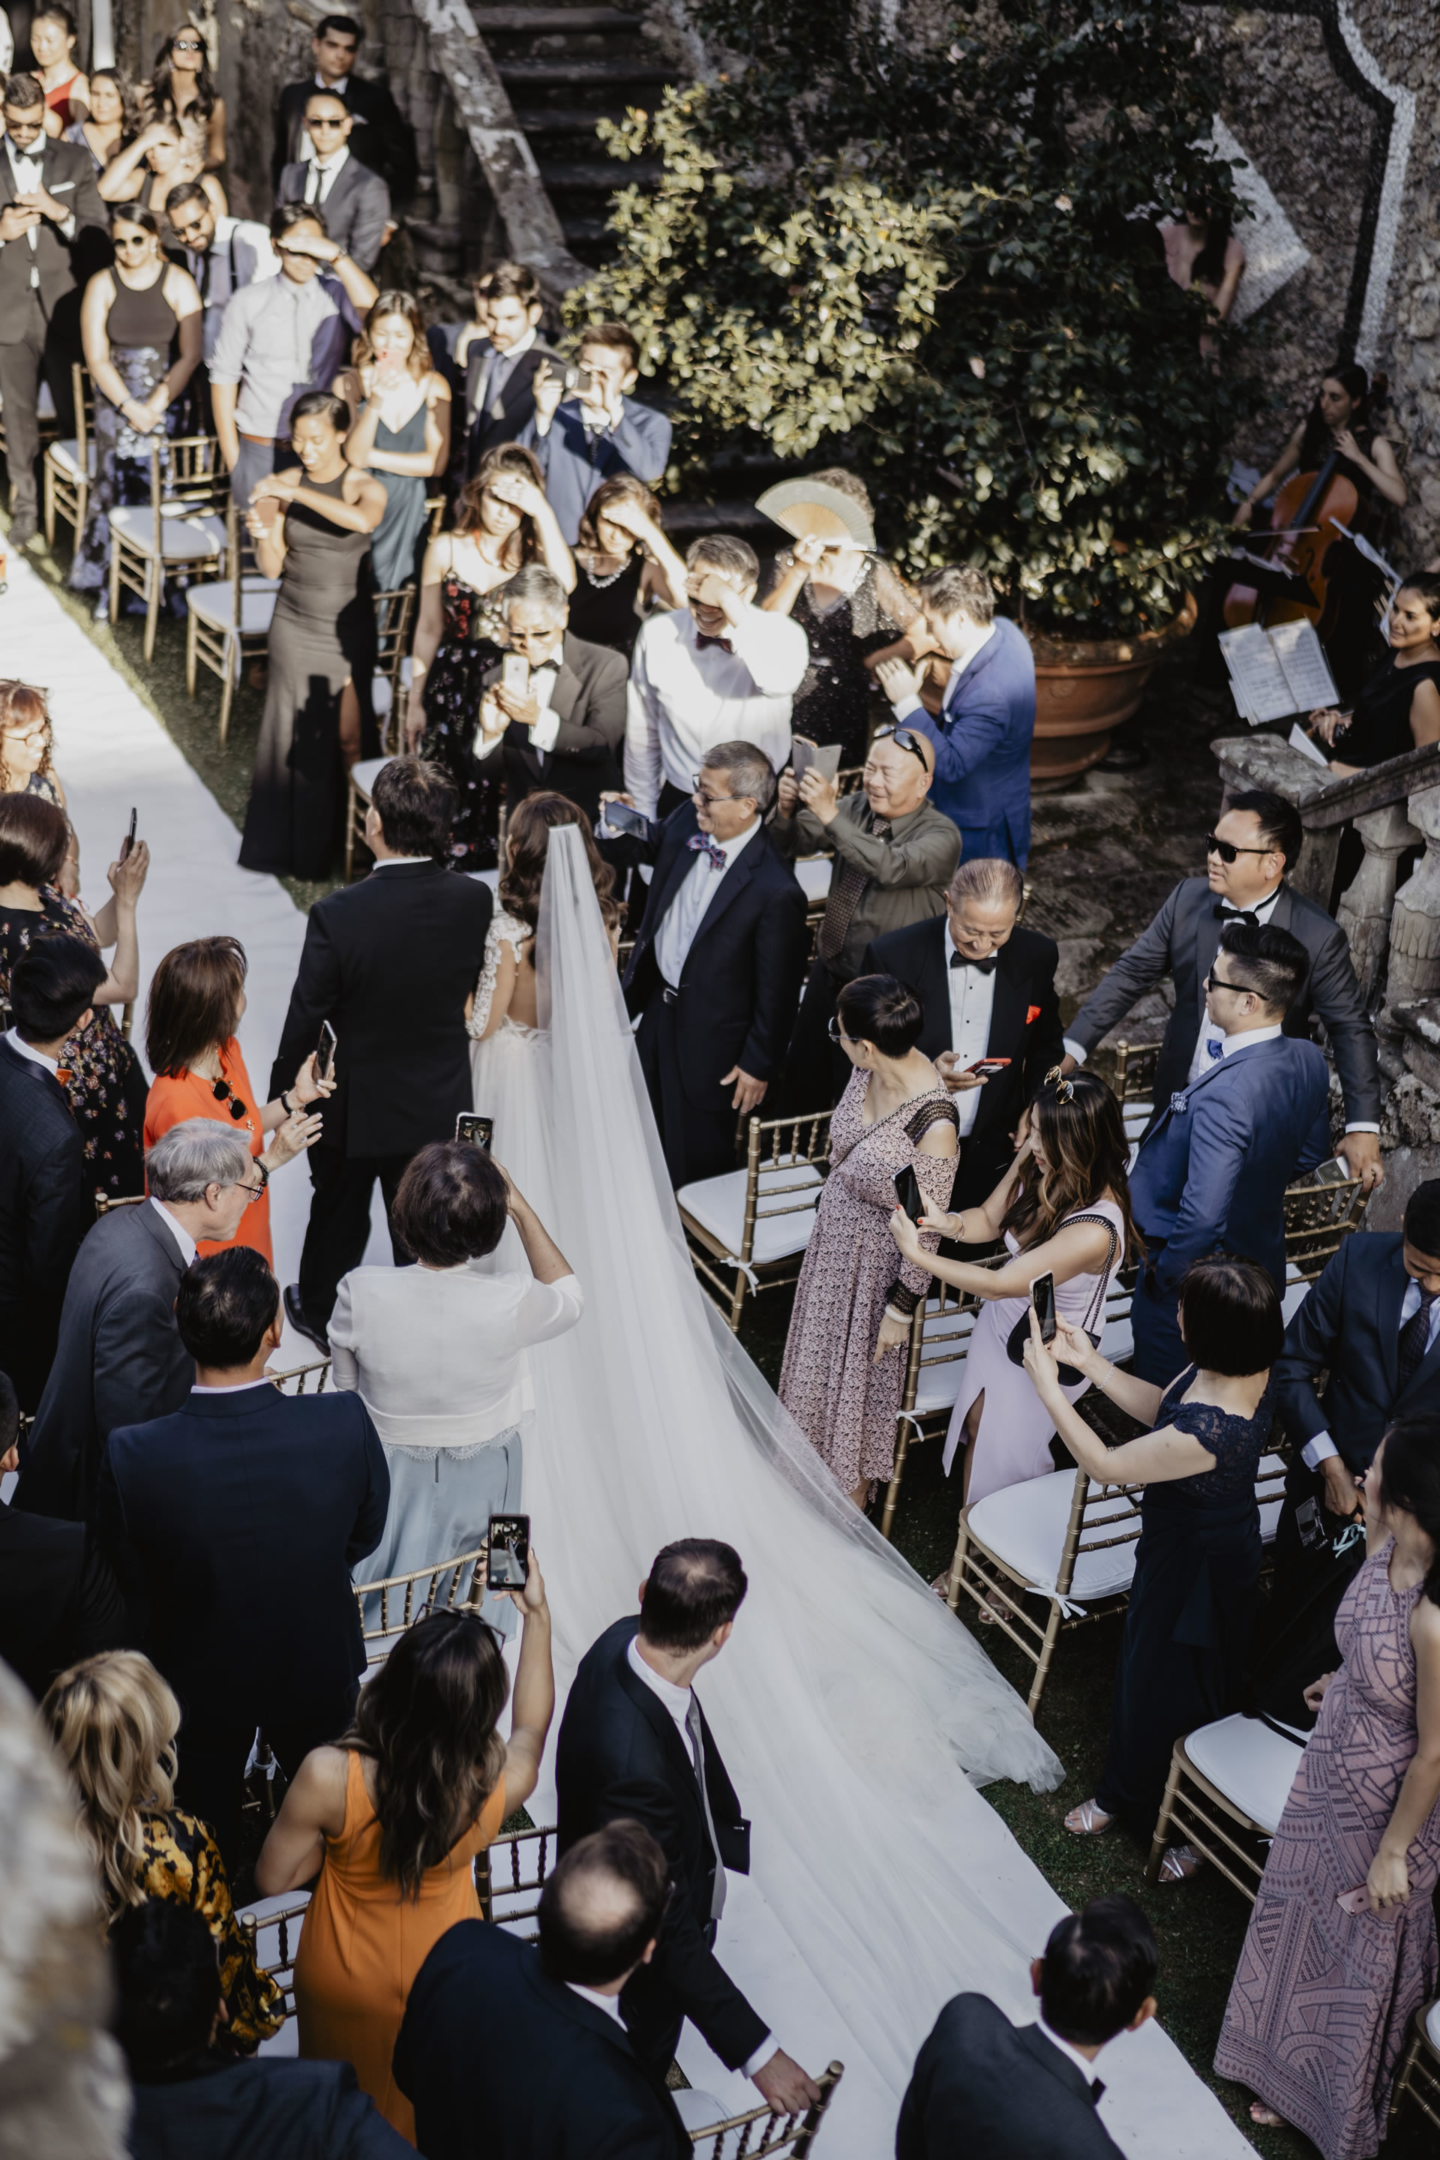 - 28 :: From Los angeles to Florence: a glamour asiatic wedding :: Luxury wedding photography - 27 ::  - 28